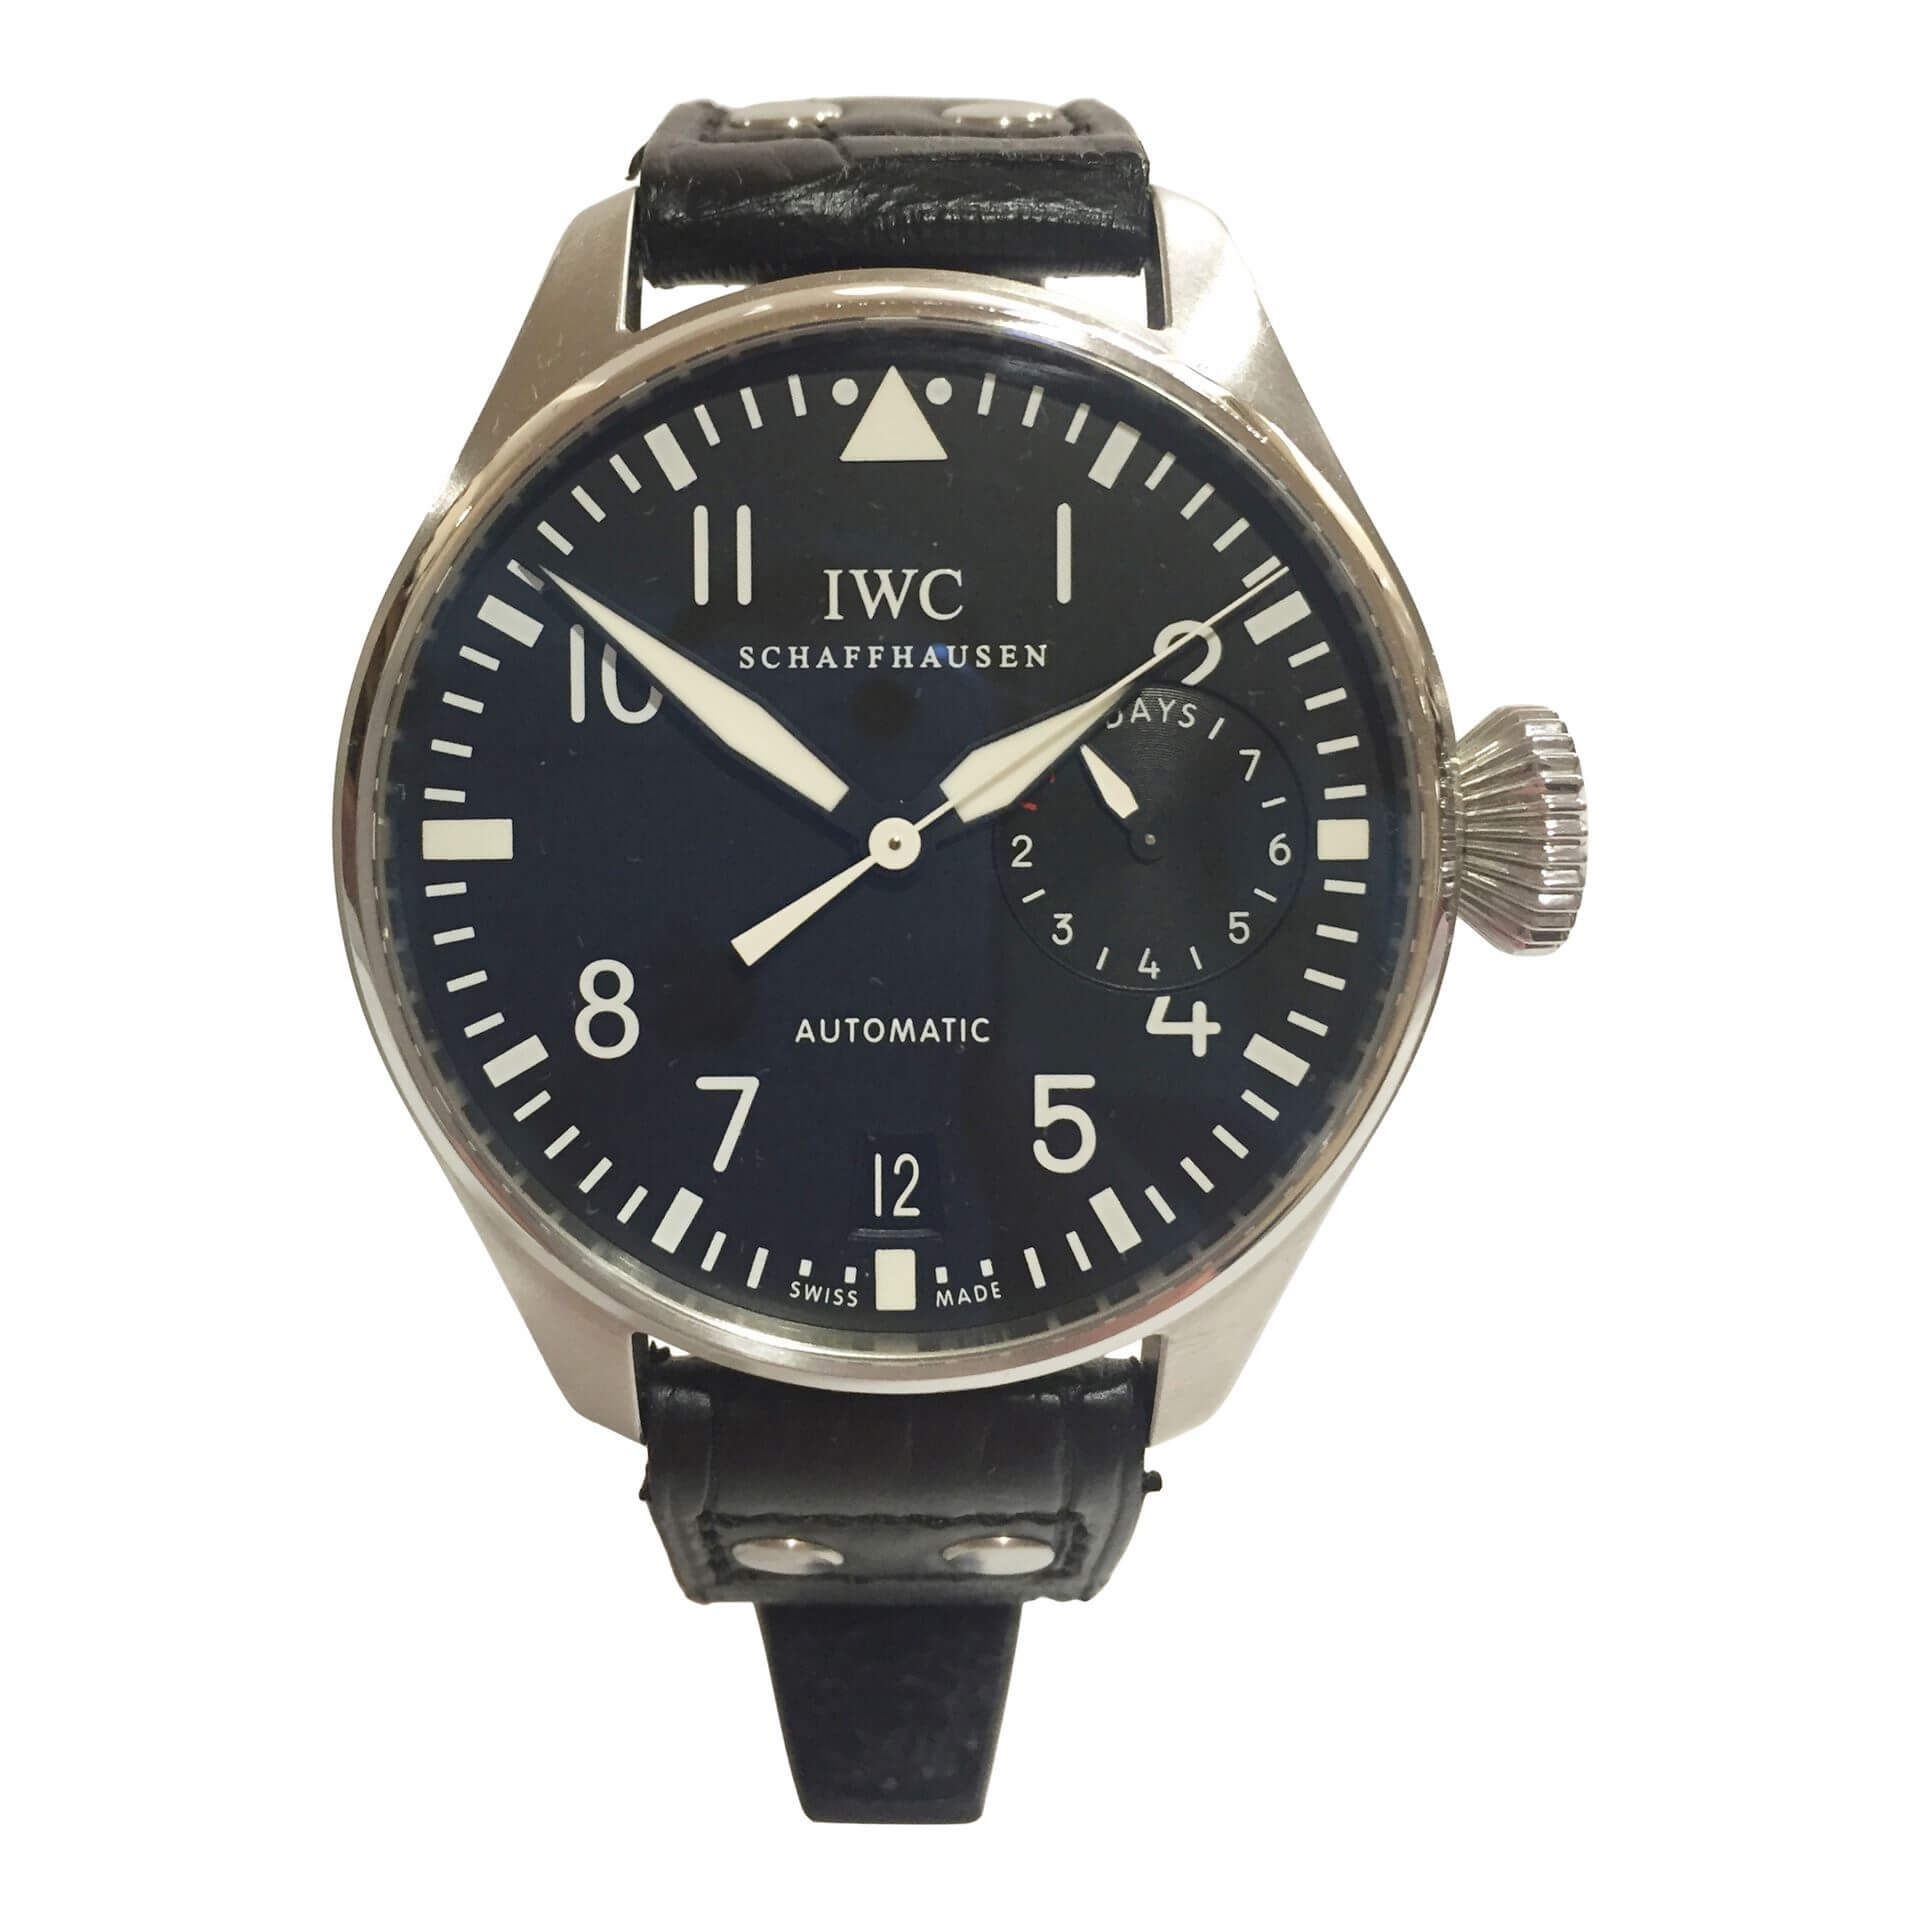 oversize iwc stainless steel men 39 s watch with black fac. Black Bedroom Furniture Sets. Home Design Ideas